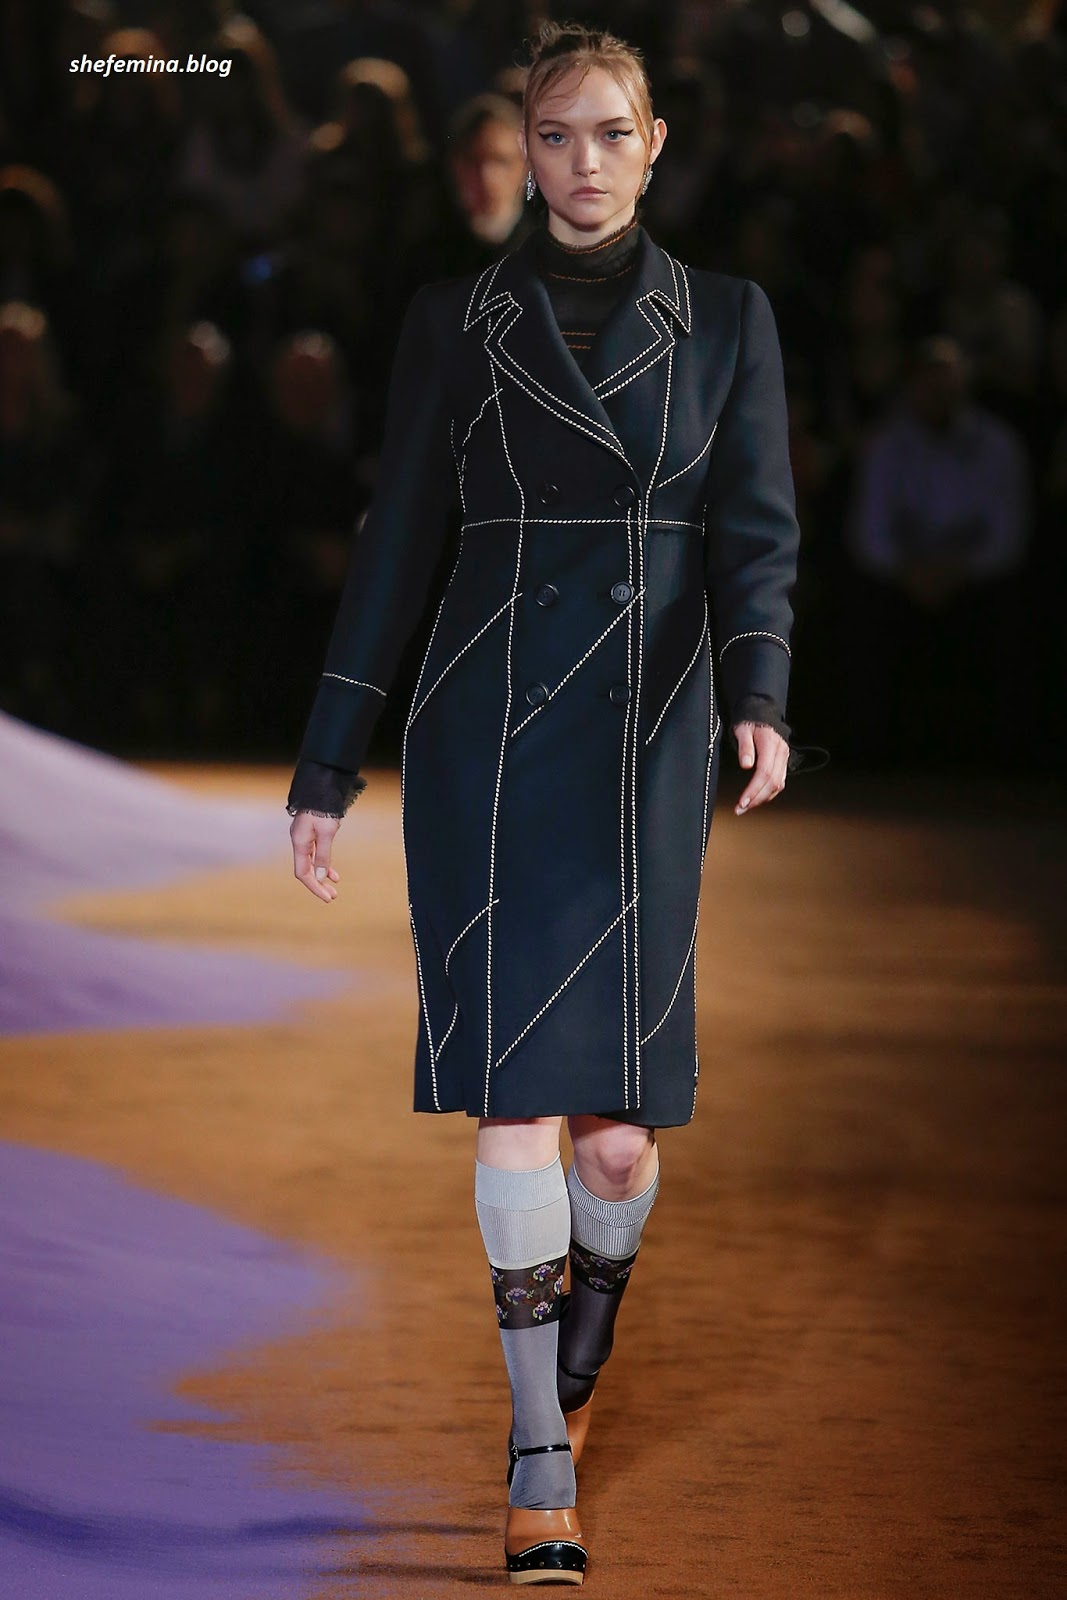 DKNY Makes A Serious Statement At New York Fashion Week forecast